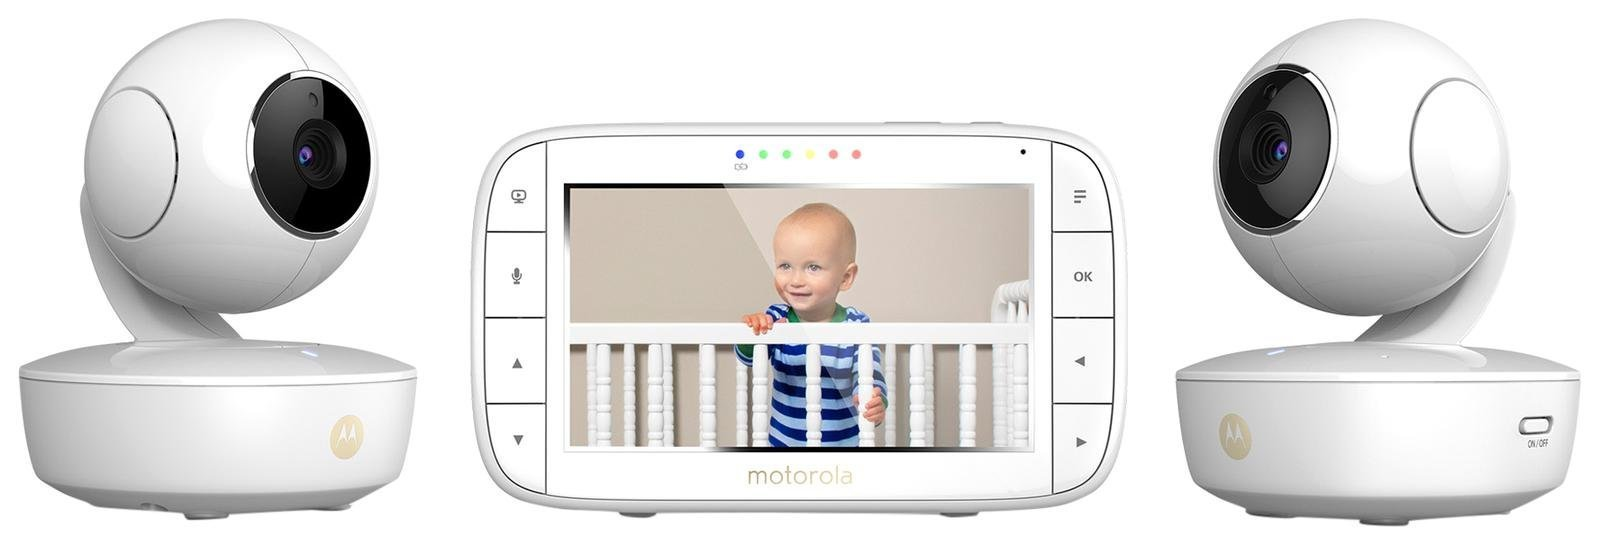 Motorola MBP36XL-2 Portable Video Baby Monitor, 5-inch Color Screen, 2 Rechargeable Cameras with Remote Pan, Tilt, and Zoom, Two-Way Audio, and Room Temperature Display by Motorola Baby (Image #1)